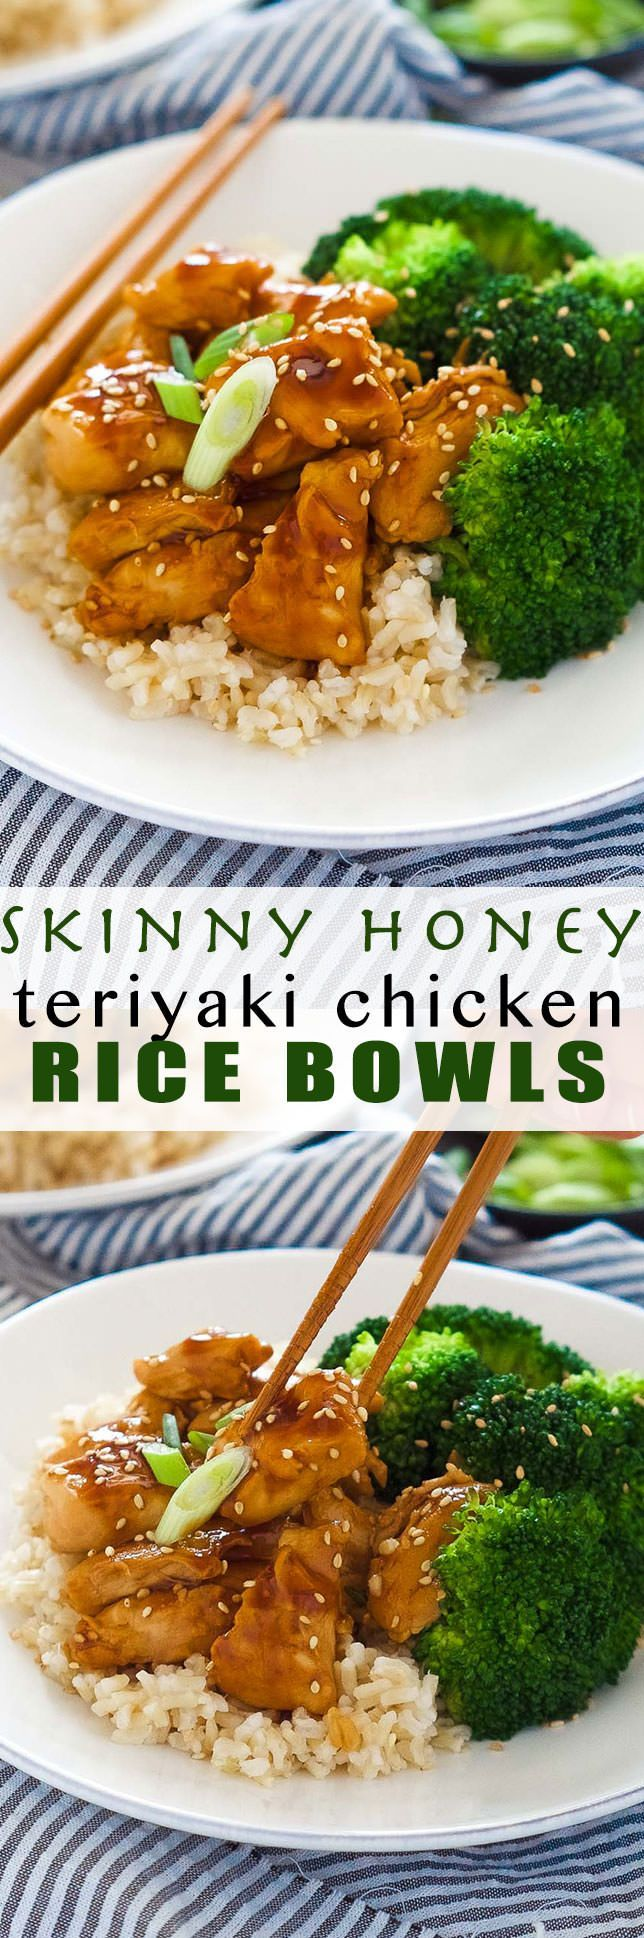 These delicious Skinny Honey Teriyaki Chicken Rice Bowls are a super quick dinner! Tender chicken is saute